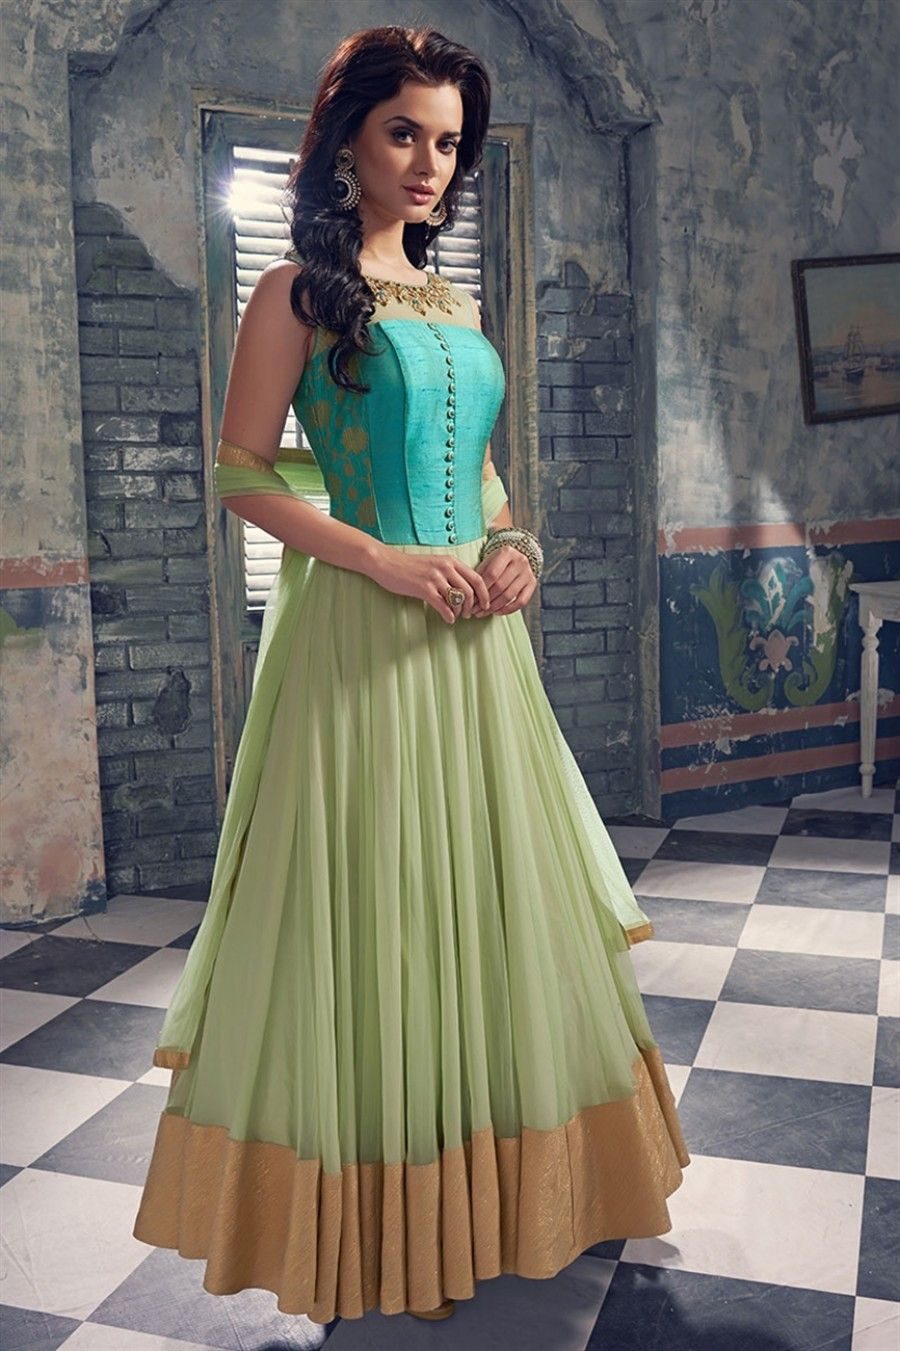 Bridal light green parrot and sky net georgette suit dresses